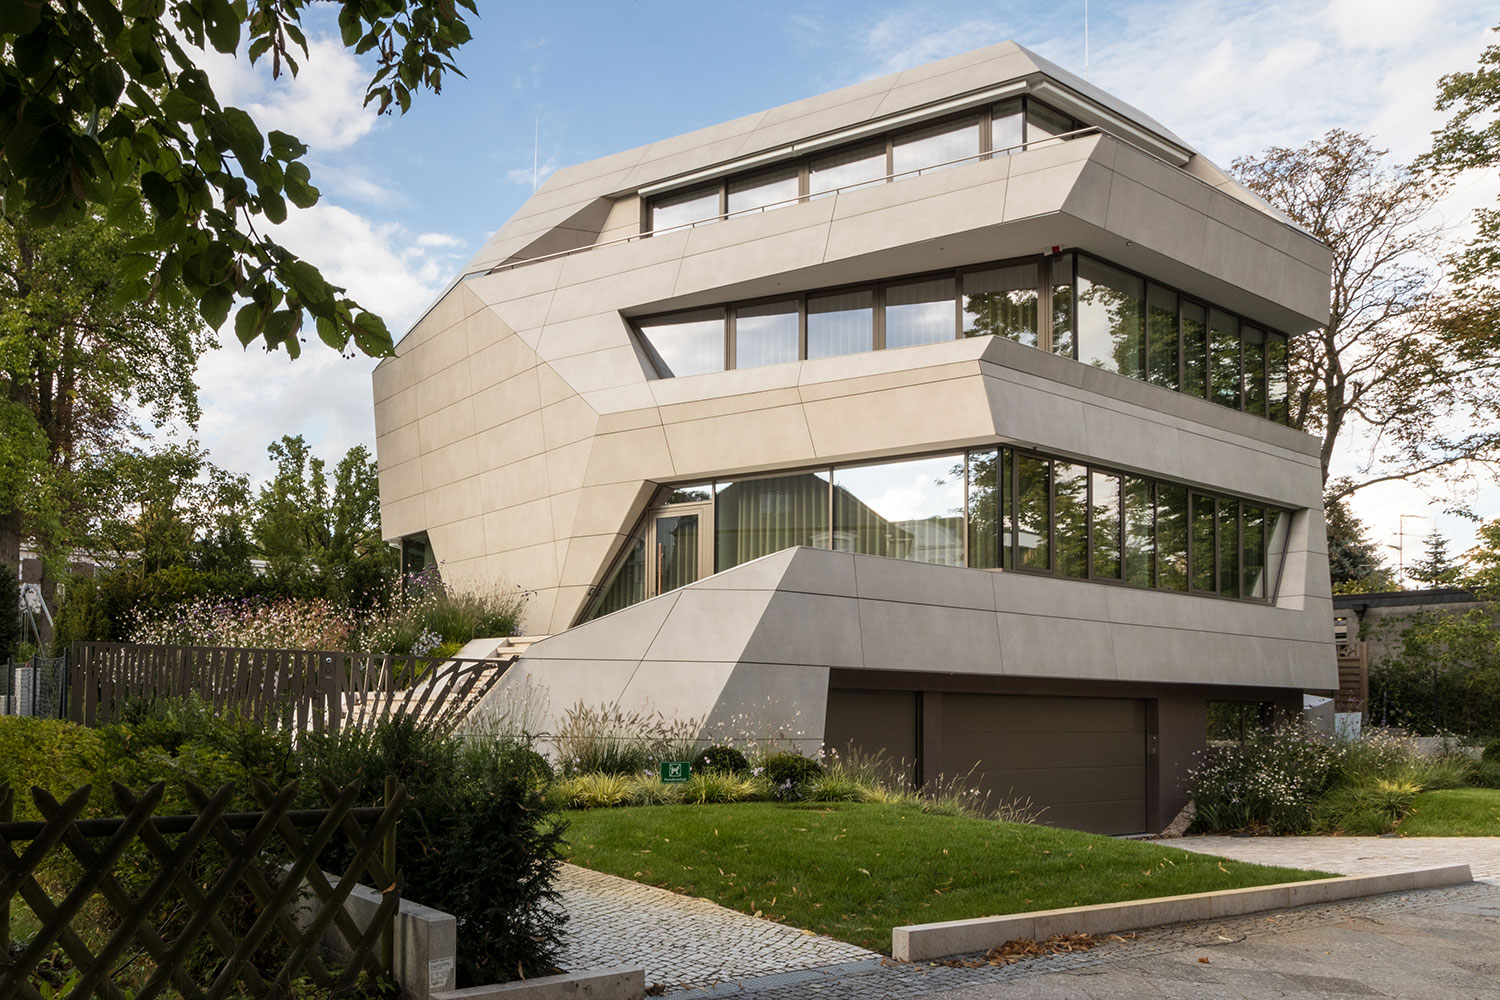 Villa M in Berlin – VidroStone High Tech Keramik-Fassade